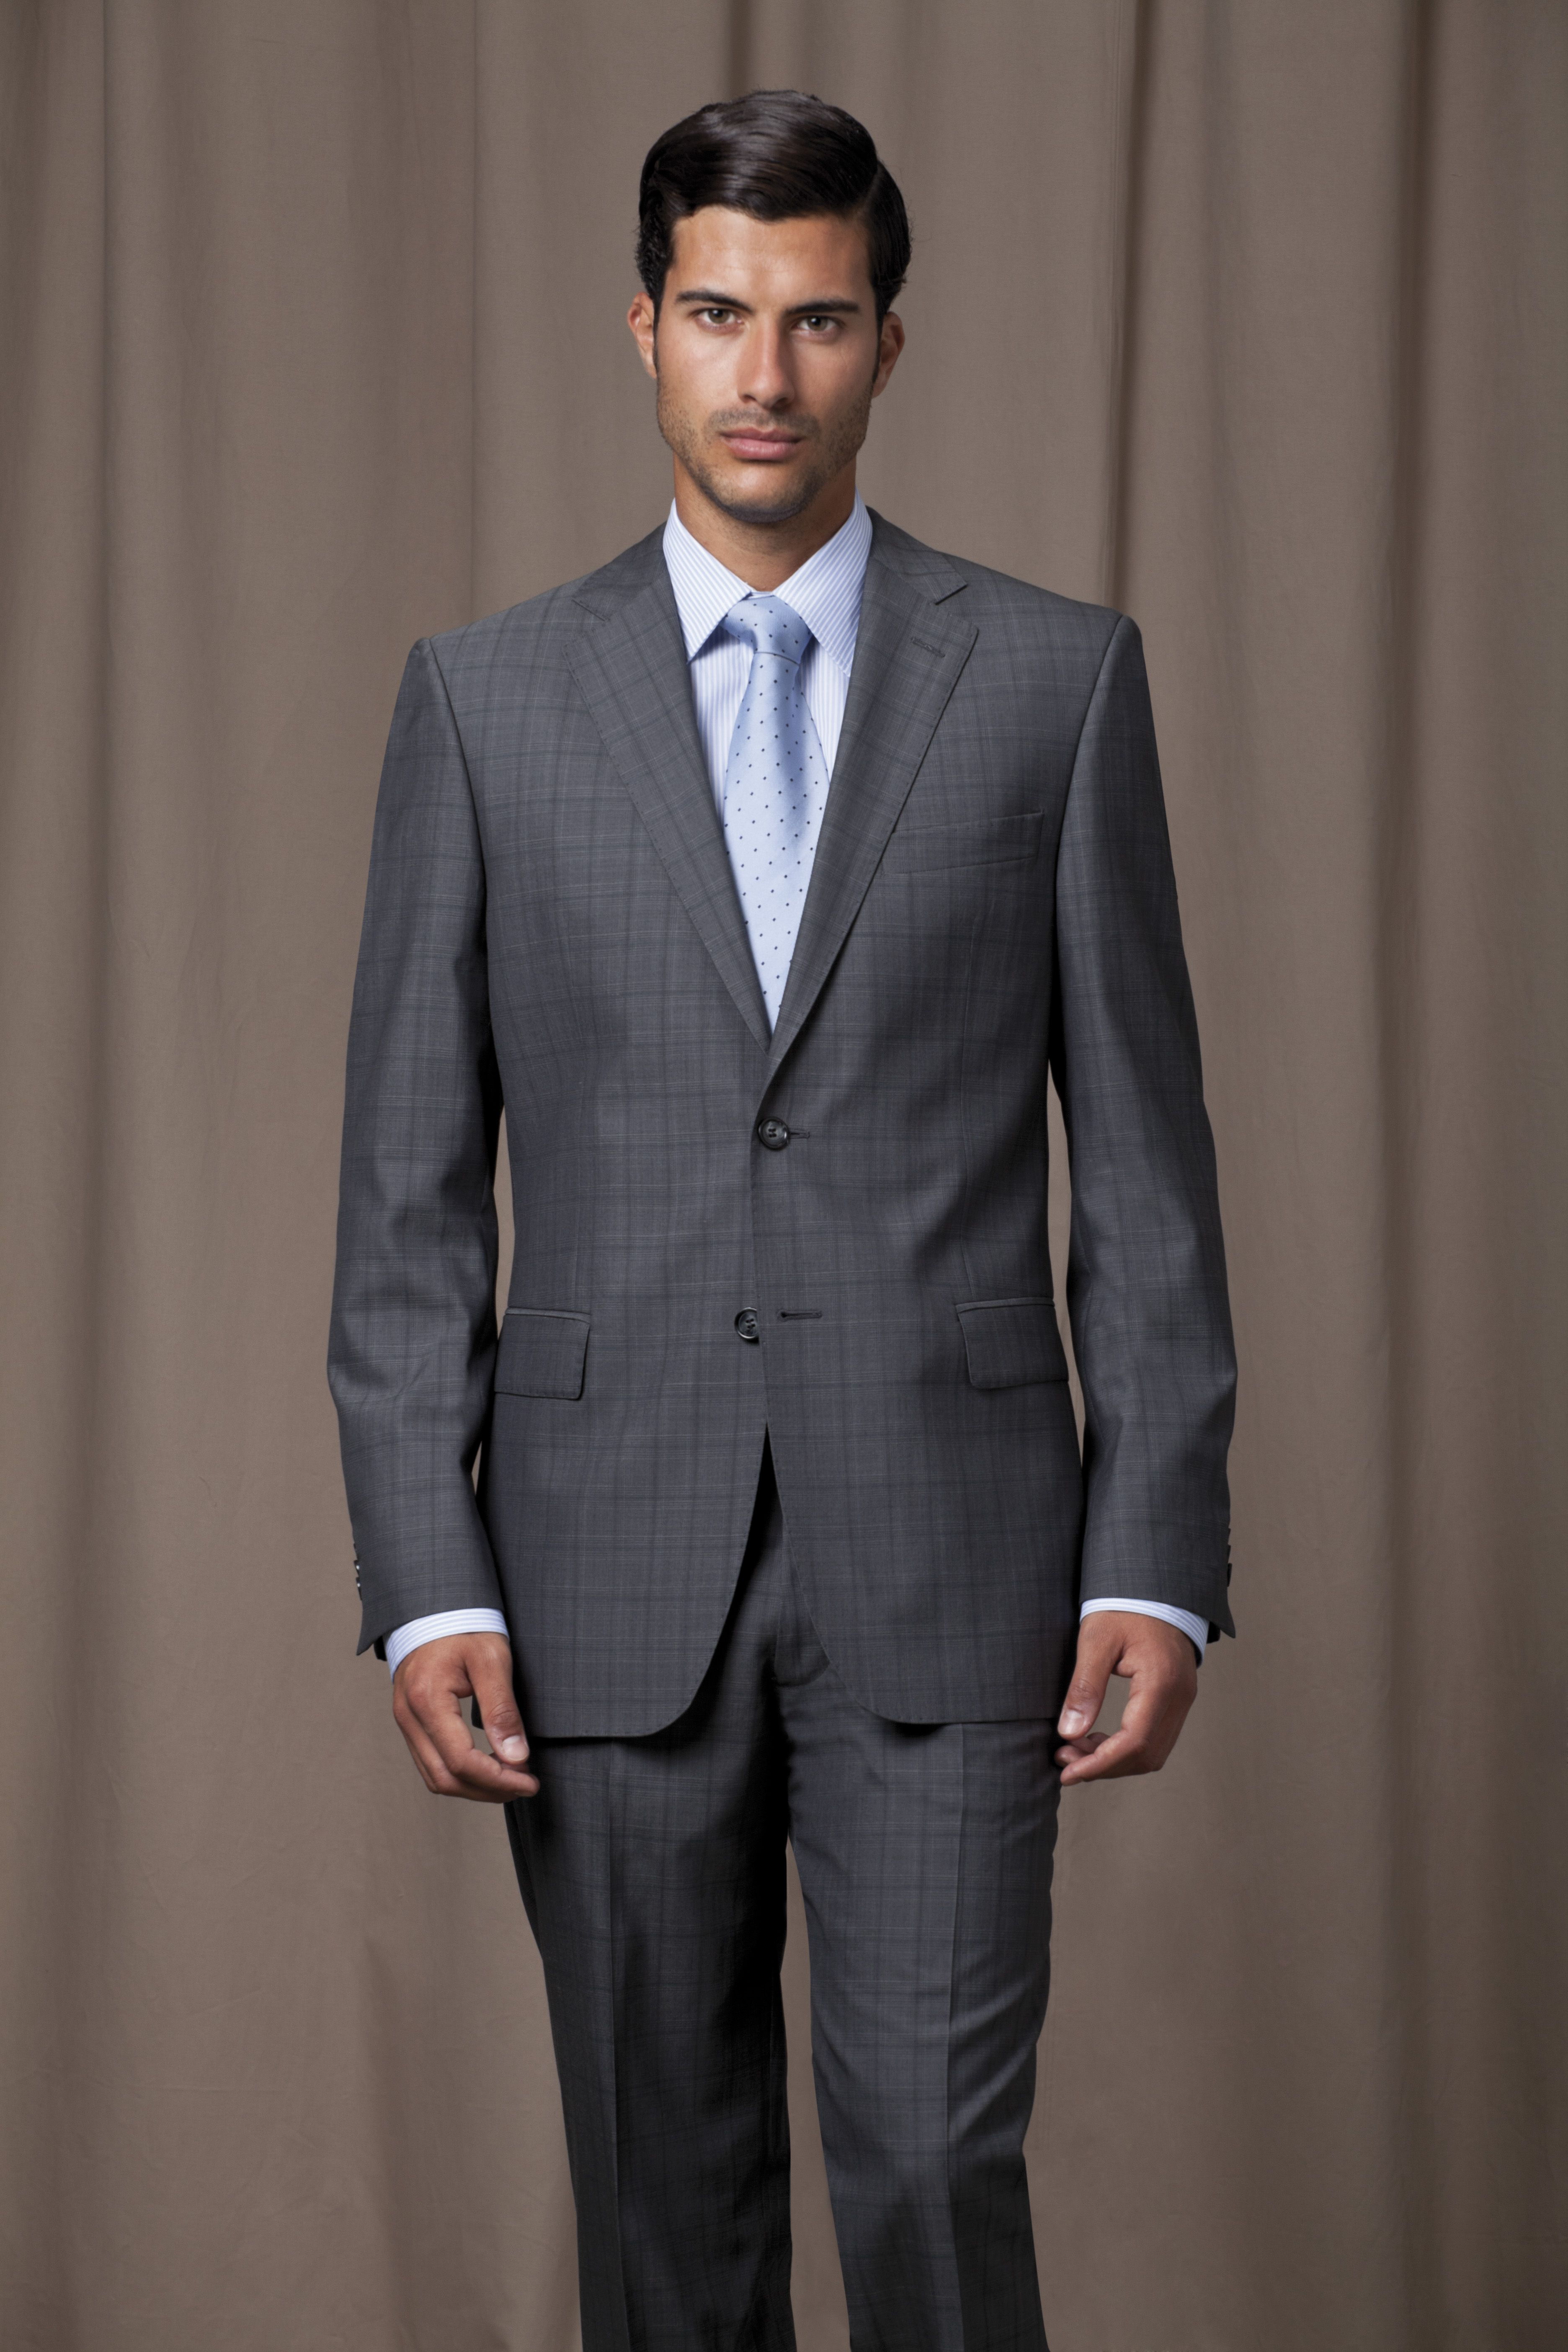 Shirt and tie ideas for grey suit